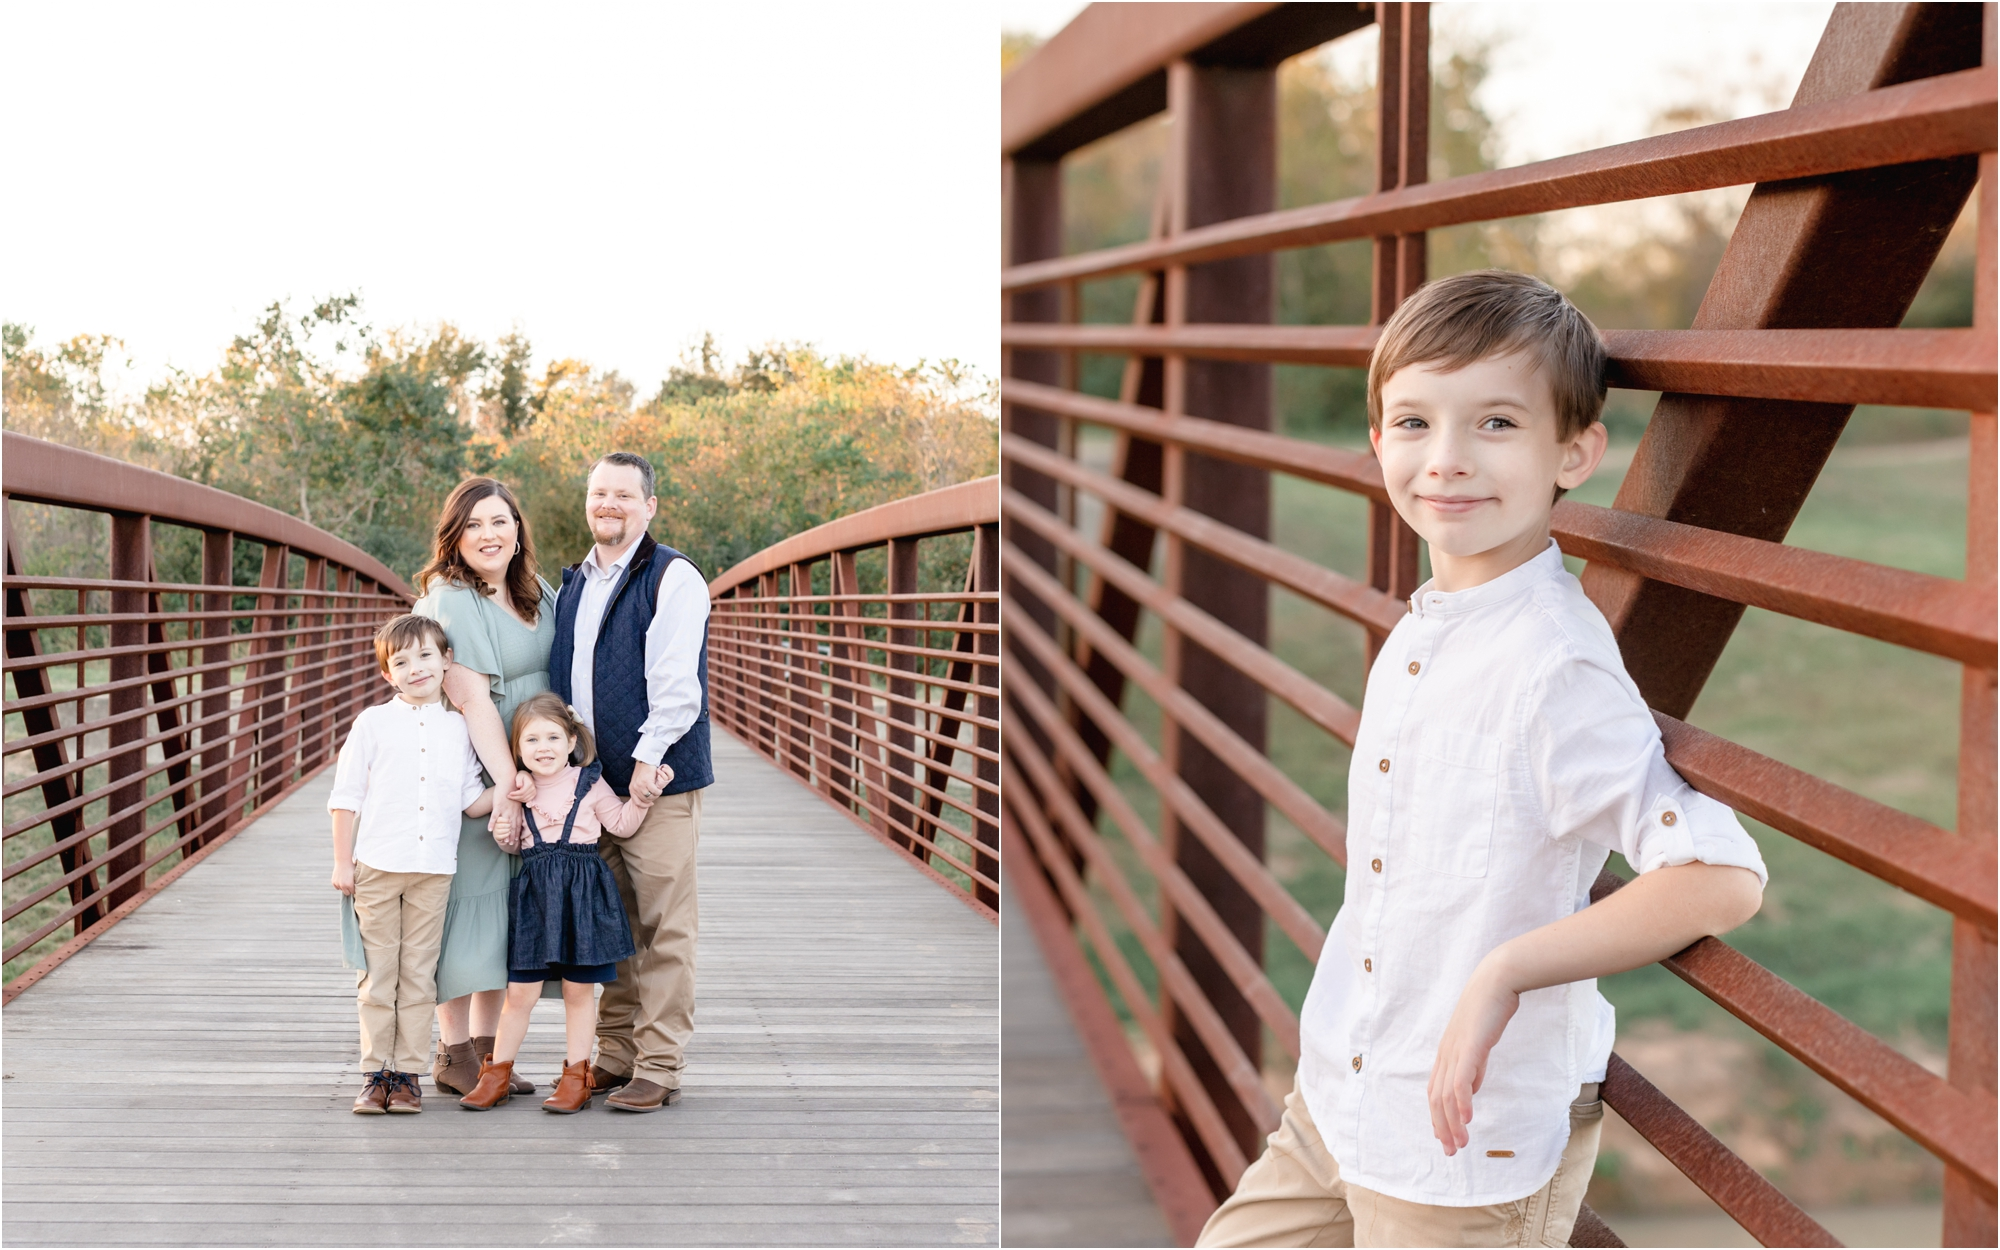 Family portrait on bridge in Katy, TX. Photo by Lifetime of Clicks Photography.